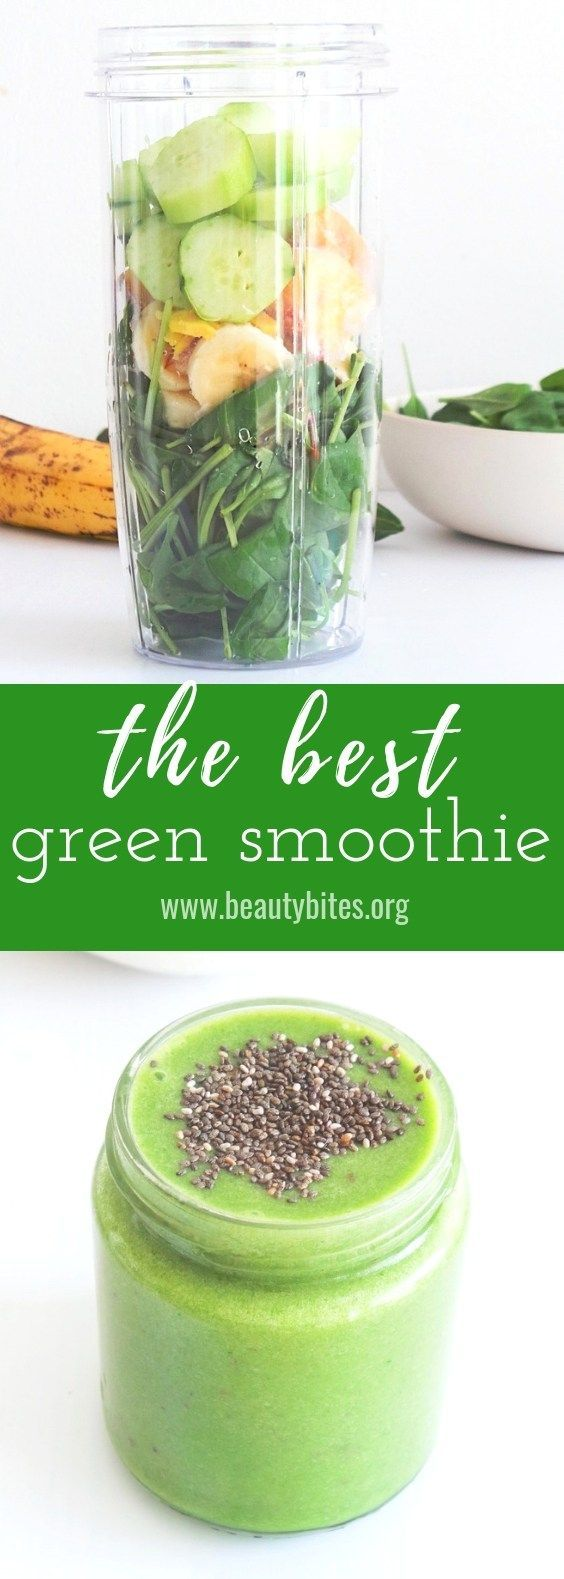 The Best Green Smoothie images